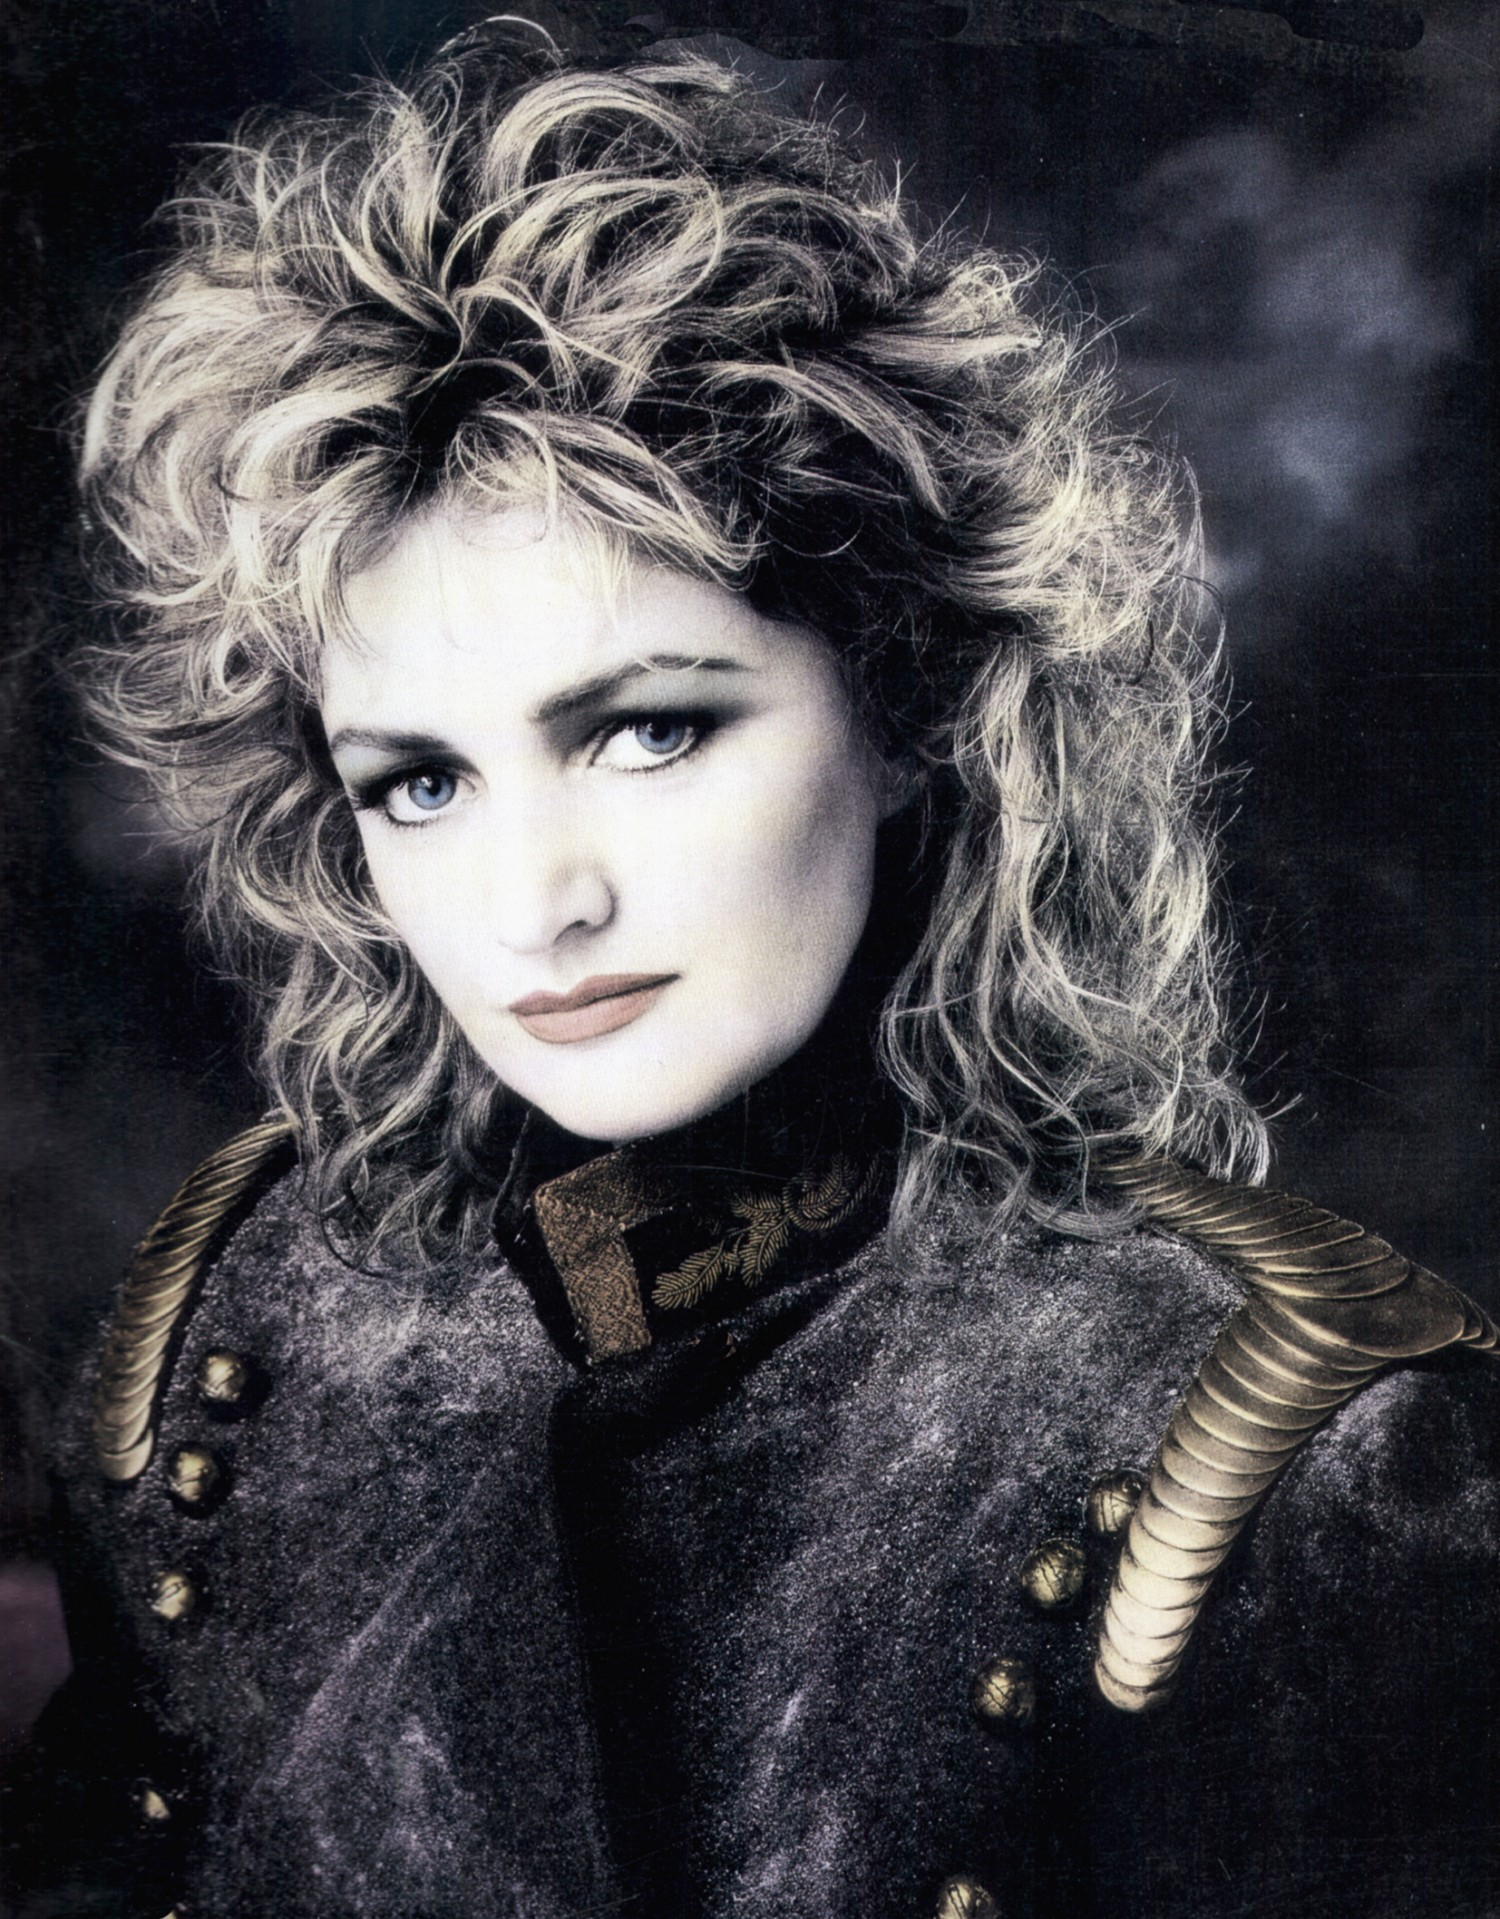 bonnie tyler bonnie tyler photo 34529966 fanpop